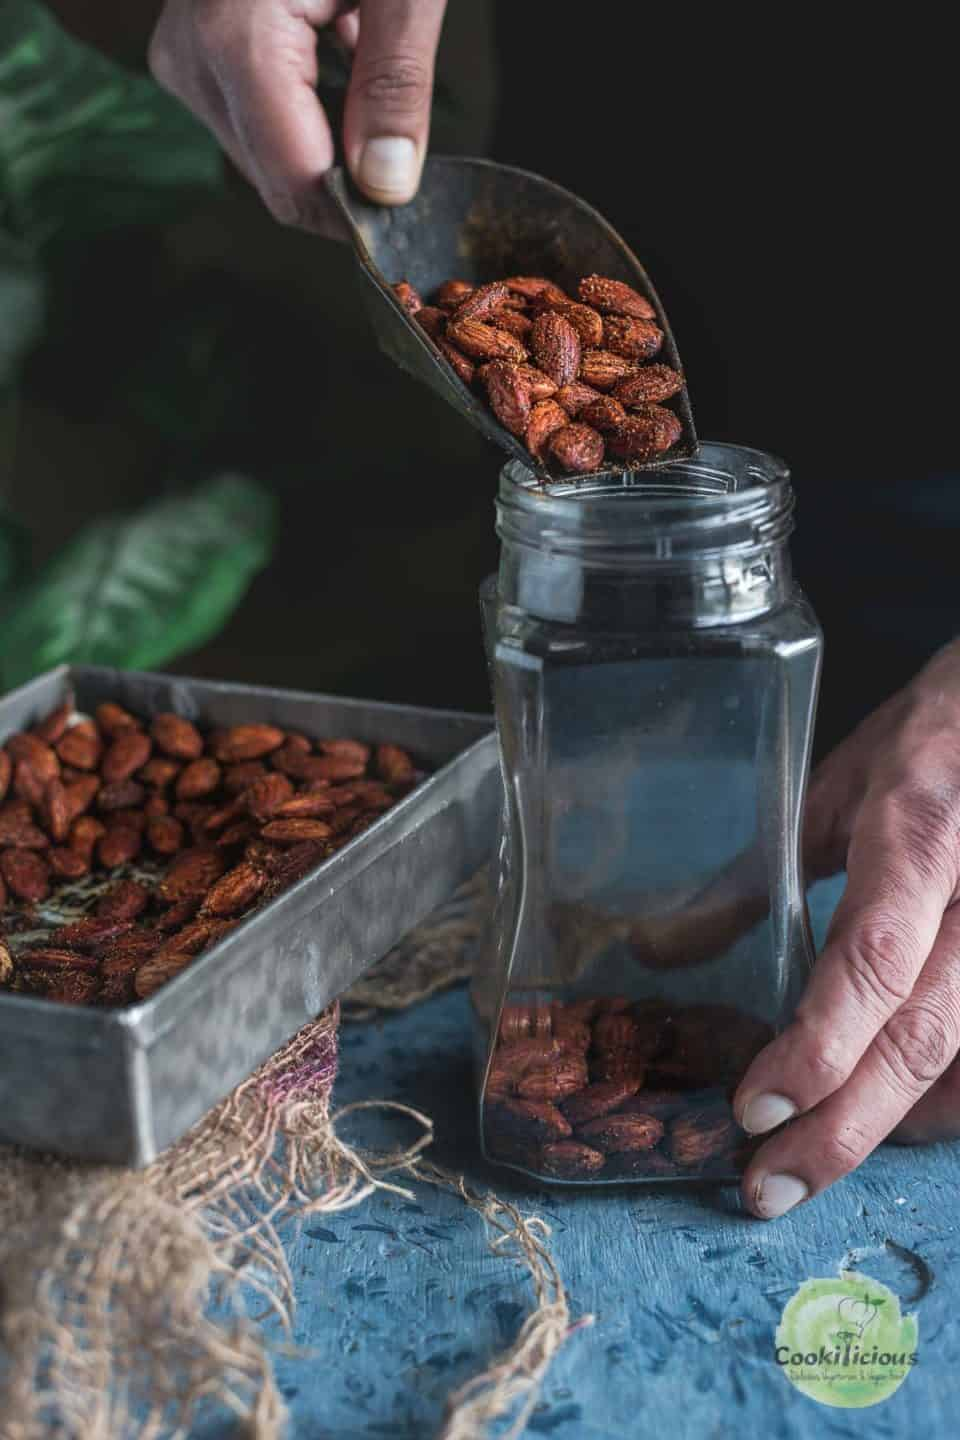 a hand pouring some Smoky Spicy Garlic Roasted Almonds into a glass jar